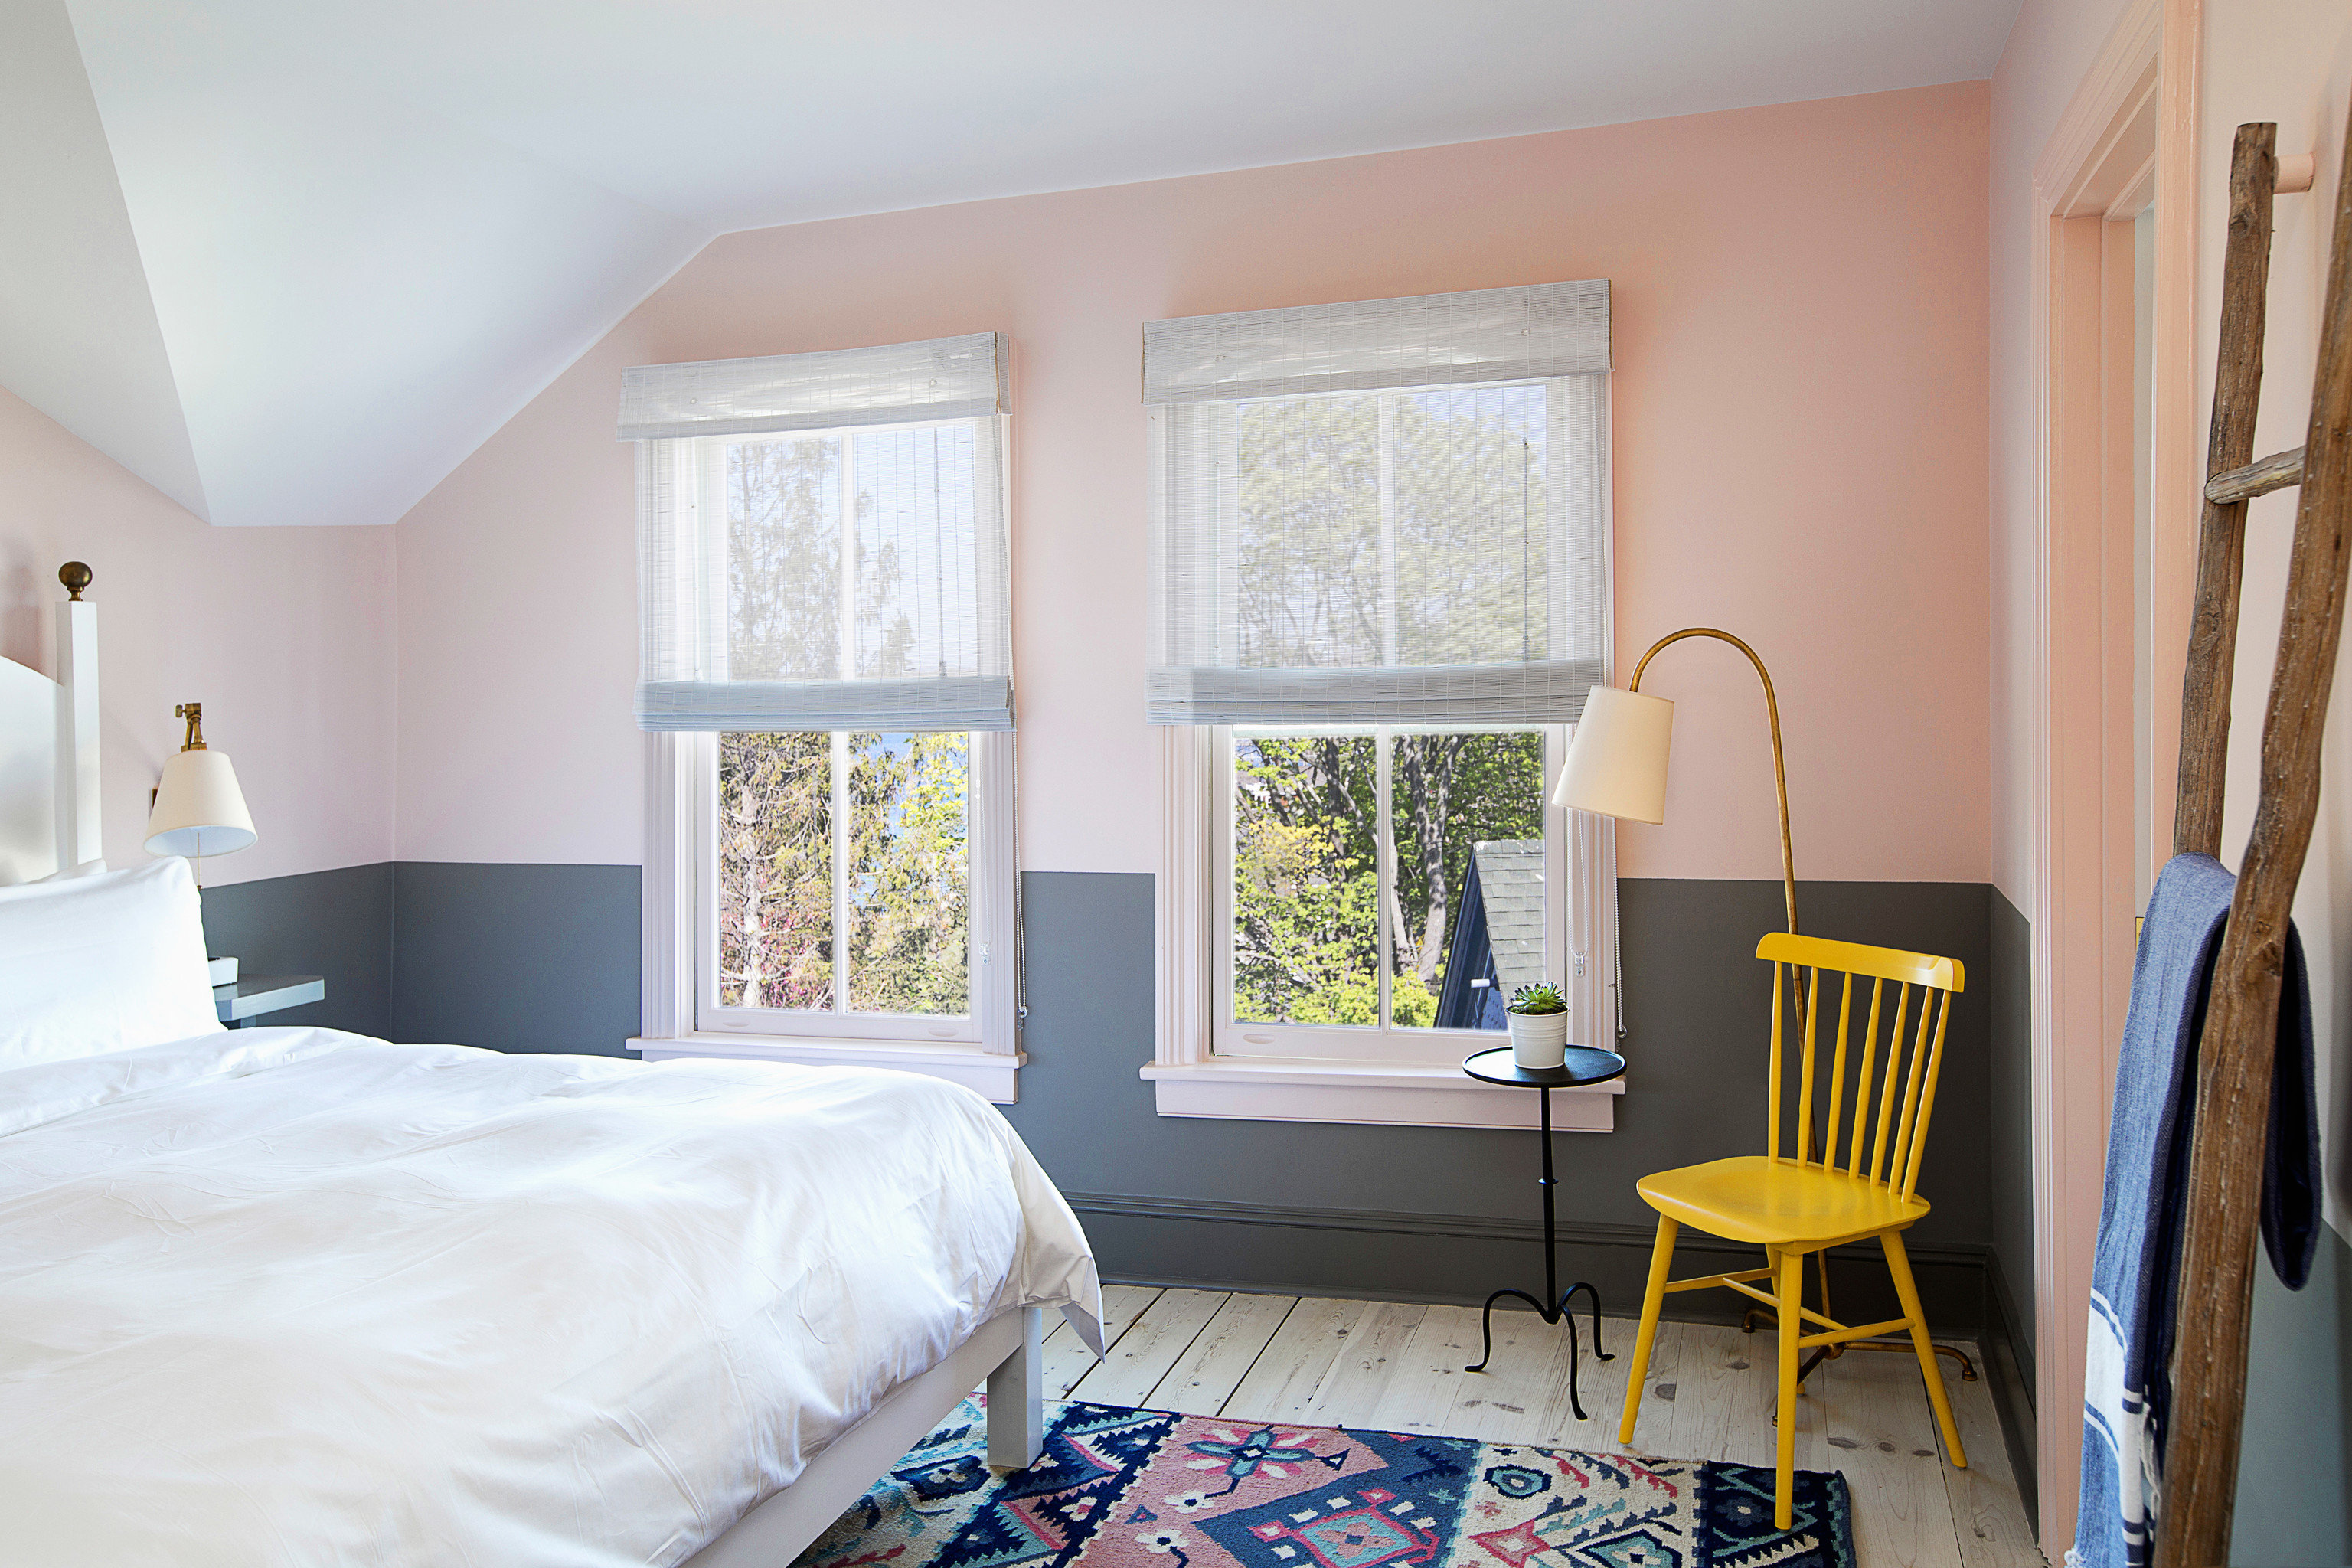 Beach Hotels New York Romance South Fork The Hamptons Trip Ideas Weekend Getaways property Bedroom home living room cottage